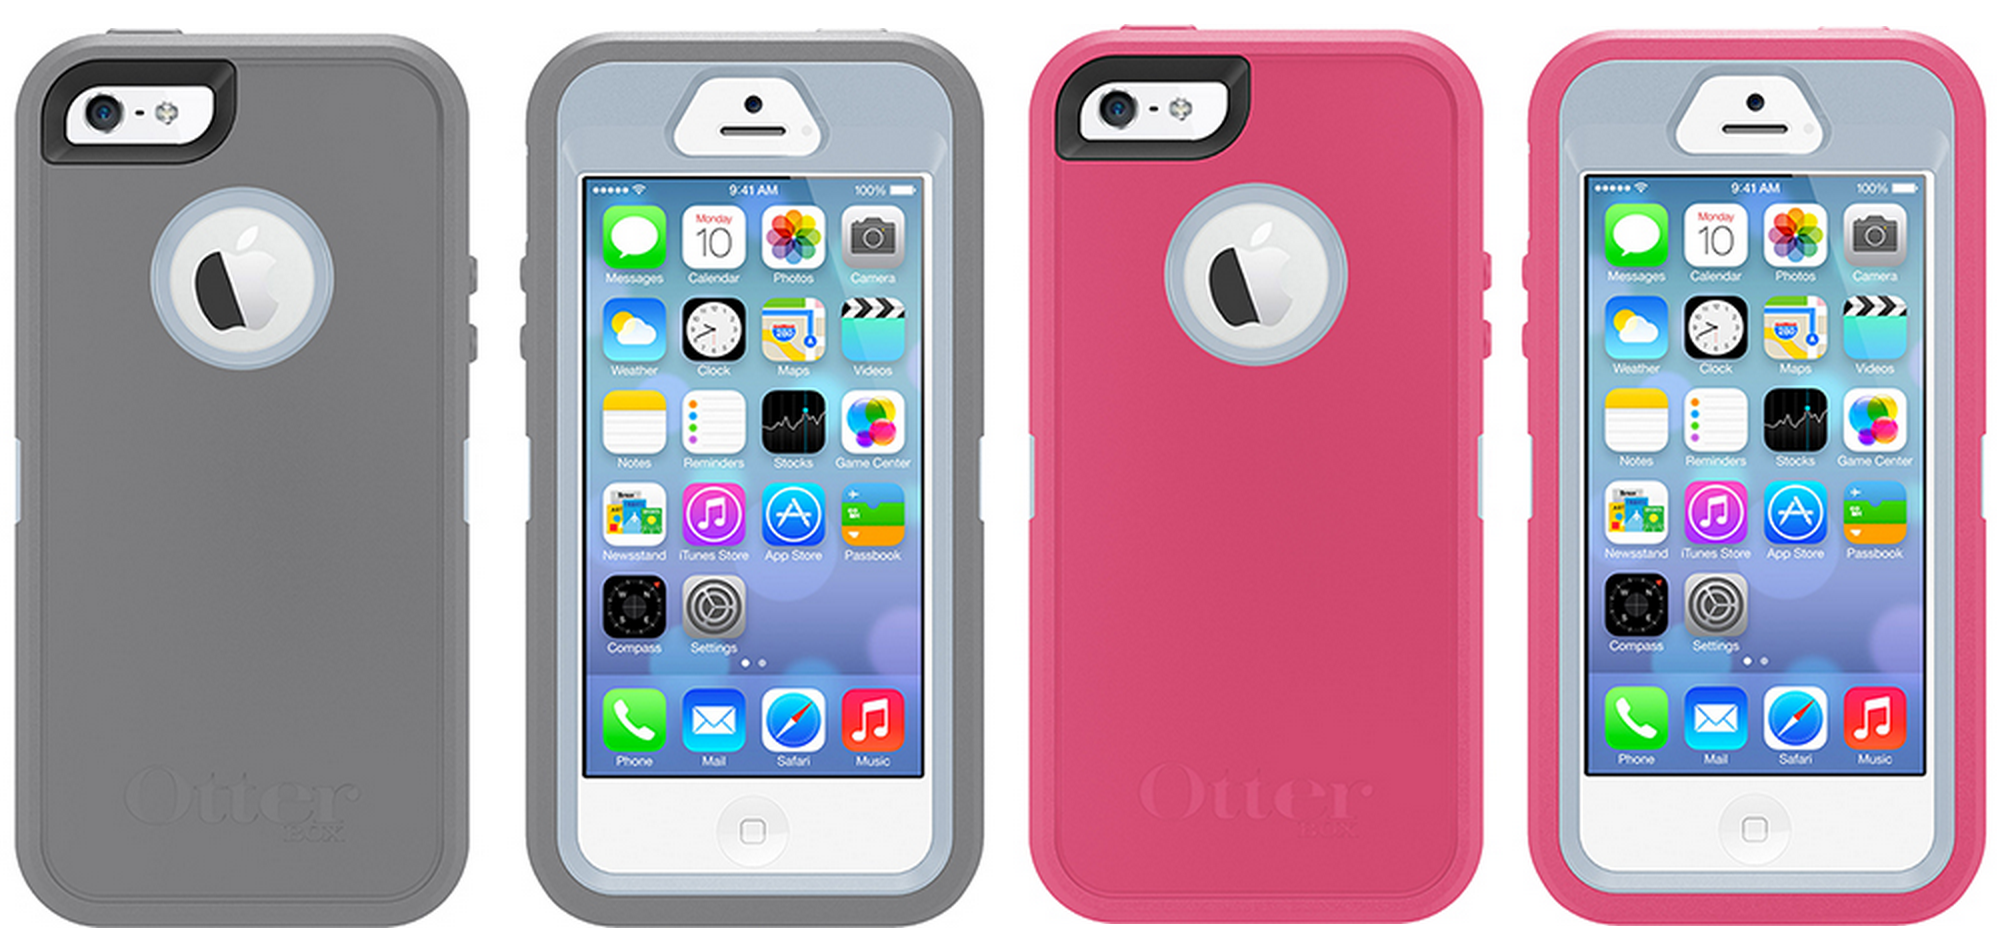 iphone 5s otterbox cases the best iphone 5c and iphone 5s cases already available 14839